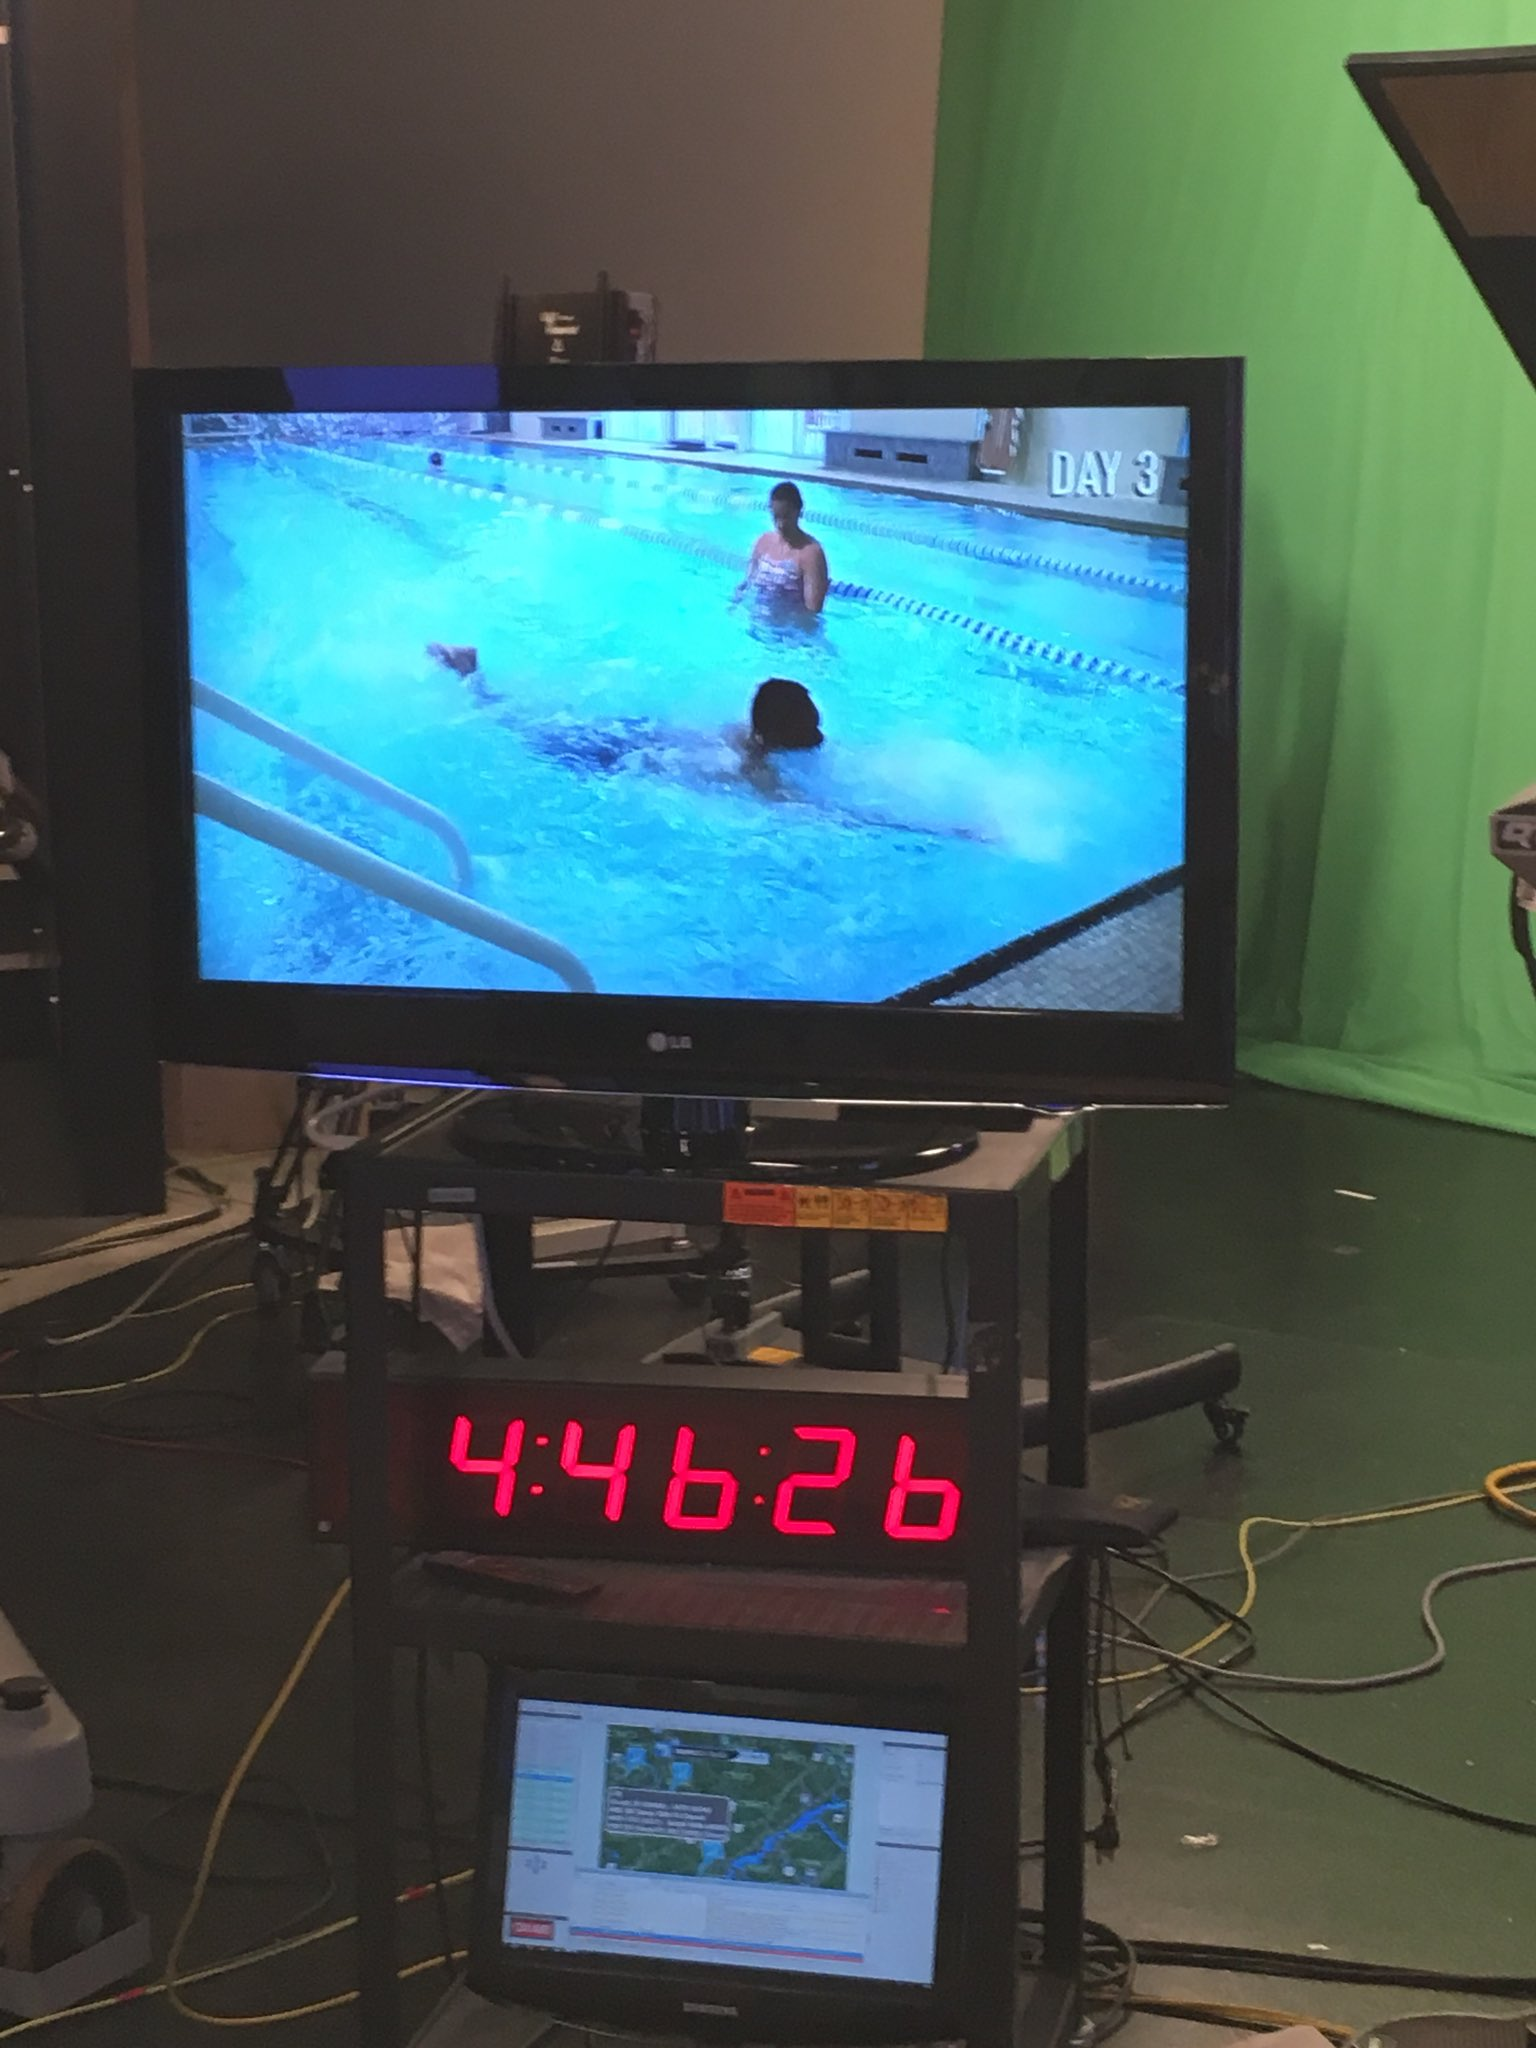 If you missed my story, you'll have another chance to catch it around 5:42. @phl17 #swim #swimming #philly #philadelphia #summer @USASwimming https://t.co/JVORd8TmBt